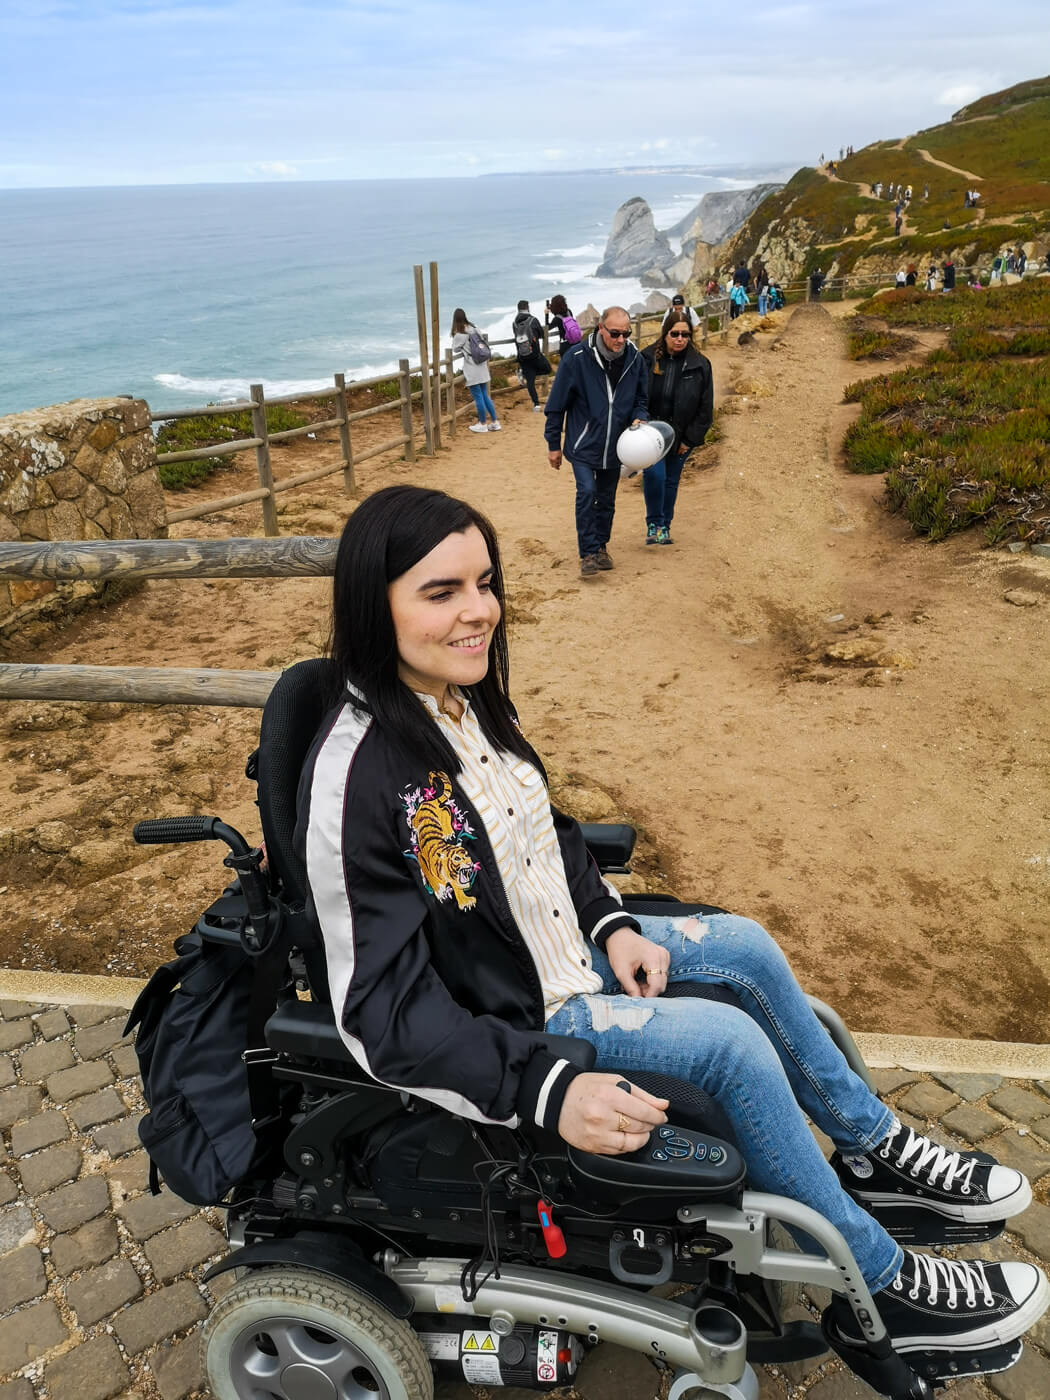 Emma sitting in her power wheelchair wearing blue skinny jeans, black converse shoes, a white and yellow striped shirt and black satin jacket with a tiger embroidery design. Emma is smiling with the view of the ocean behind her at Cabo da Roca.